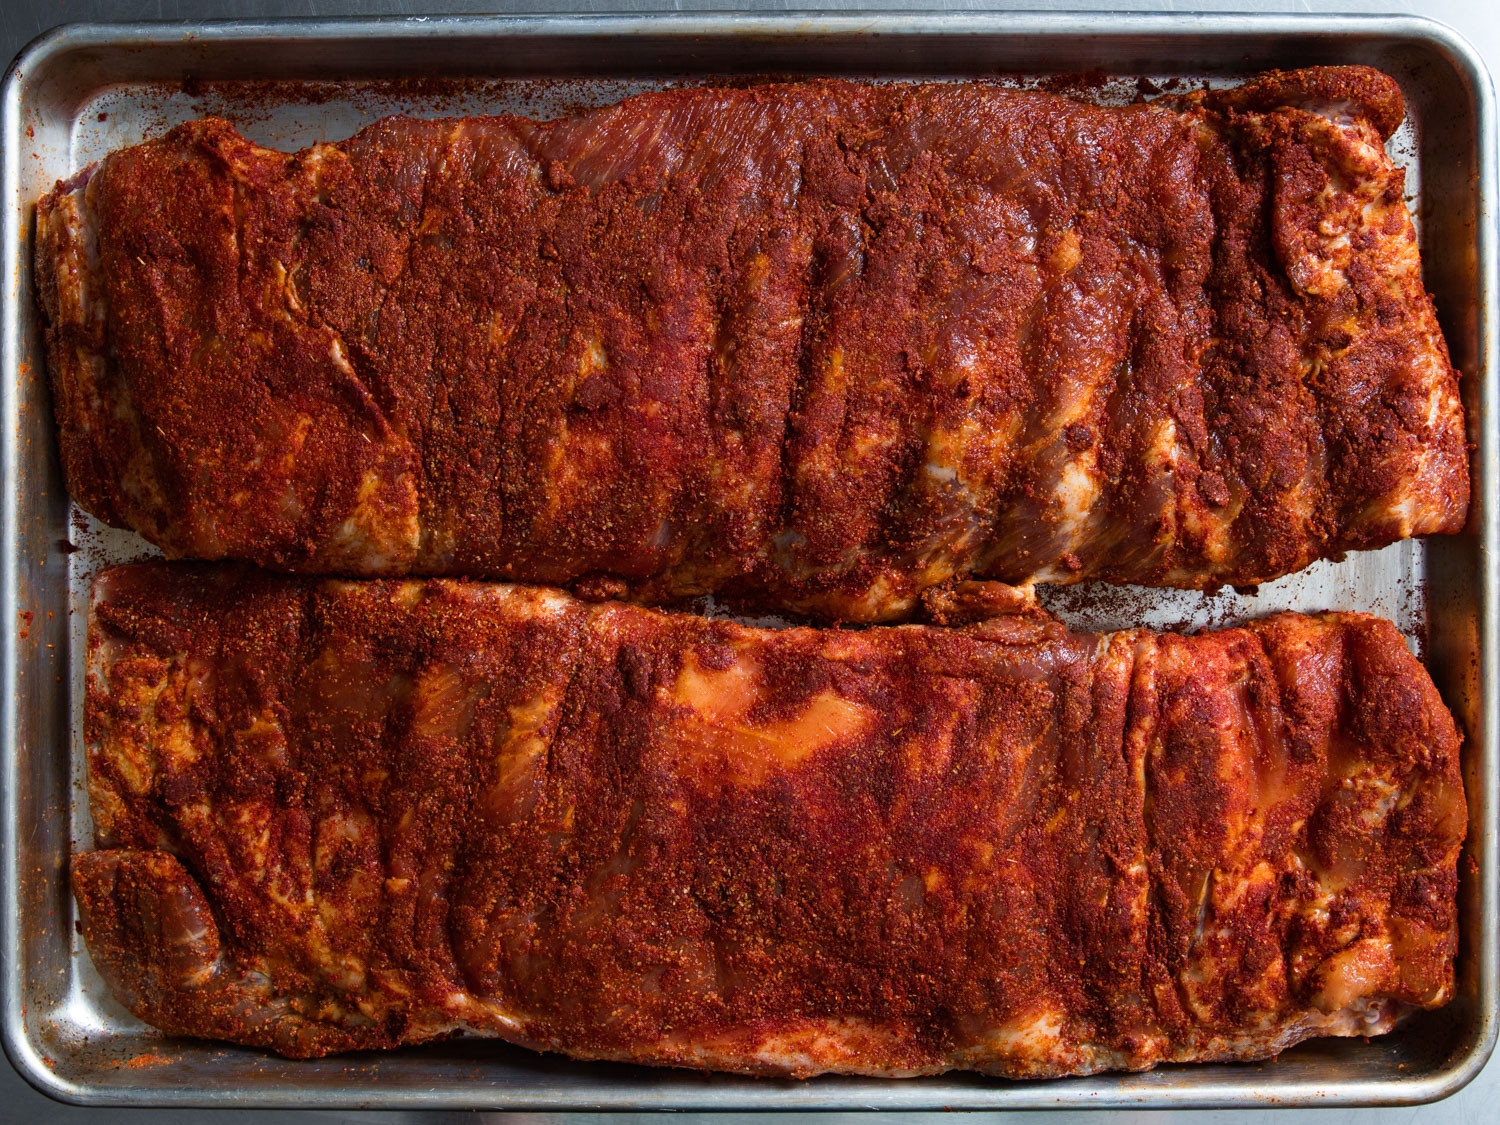 How To Cook Boneless Pork Ribs In The Oven Fast  how long does it take to cook boneless pork ribs in the oven